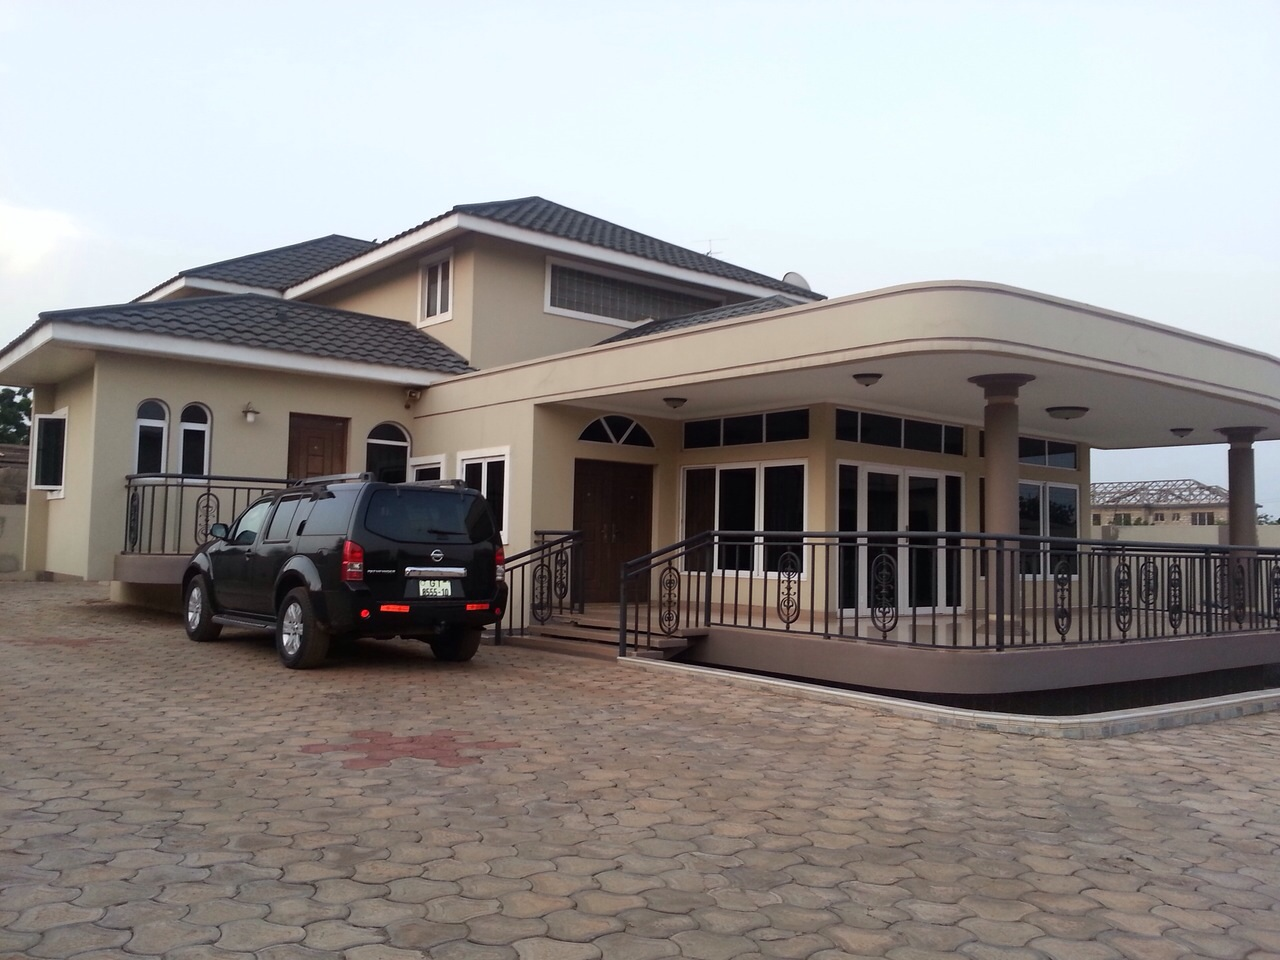 Trasacco Valley Houses Accra In Ghana likewise House For Sale In Trasaco Estates In Accra Ghana 4 1423438215 Ghana furthermore Ghana Homes furthermore East Legon Ghana Houses For Sale furthermore Bedroom House  2 Boys Quarters Rent At Trassacco. on estates in accra ghana houses for sale